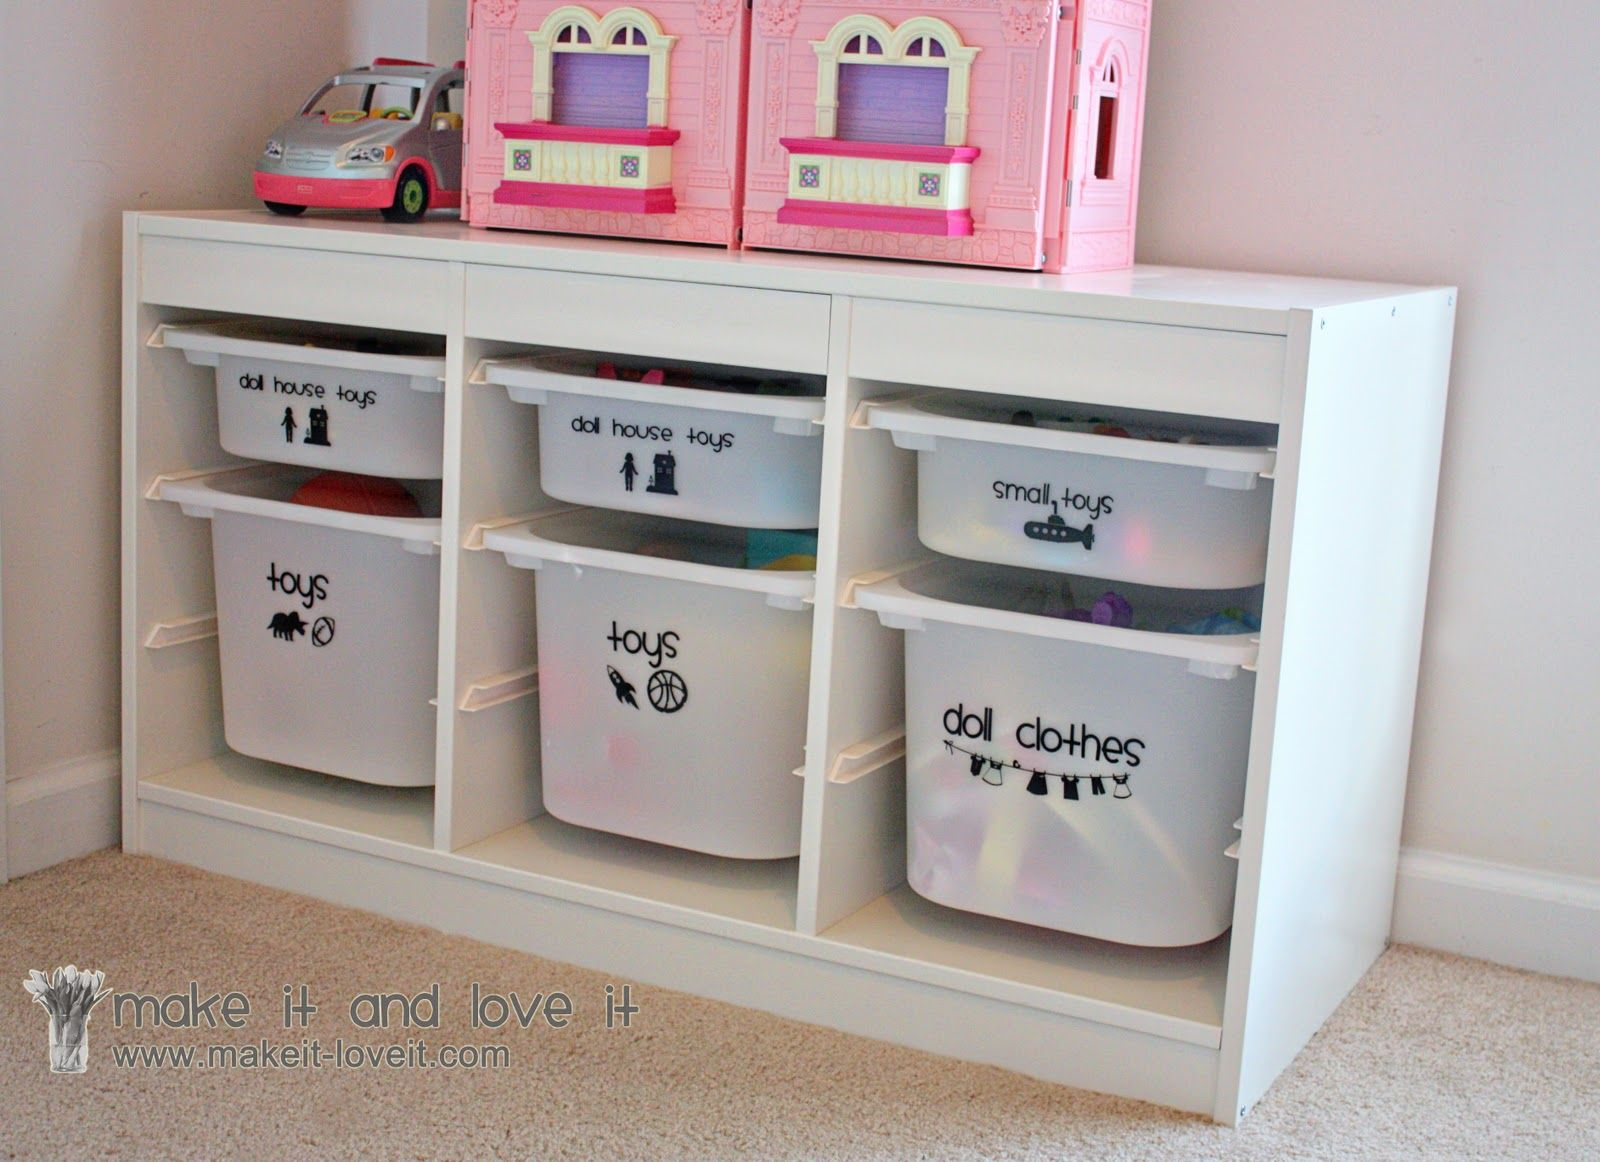 Mobili Portagiochi Per Bambini : Decorate my home part 22 toy bin labeling baby&kids pinterest